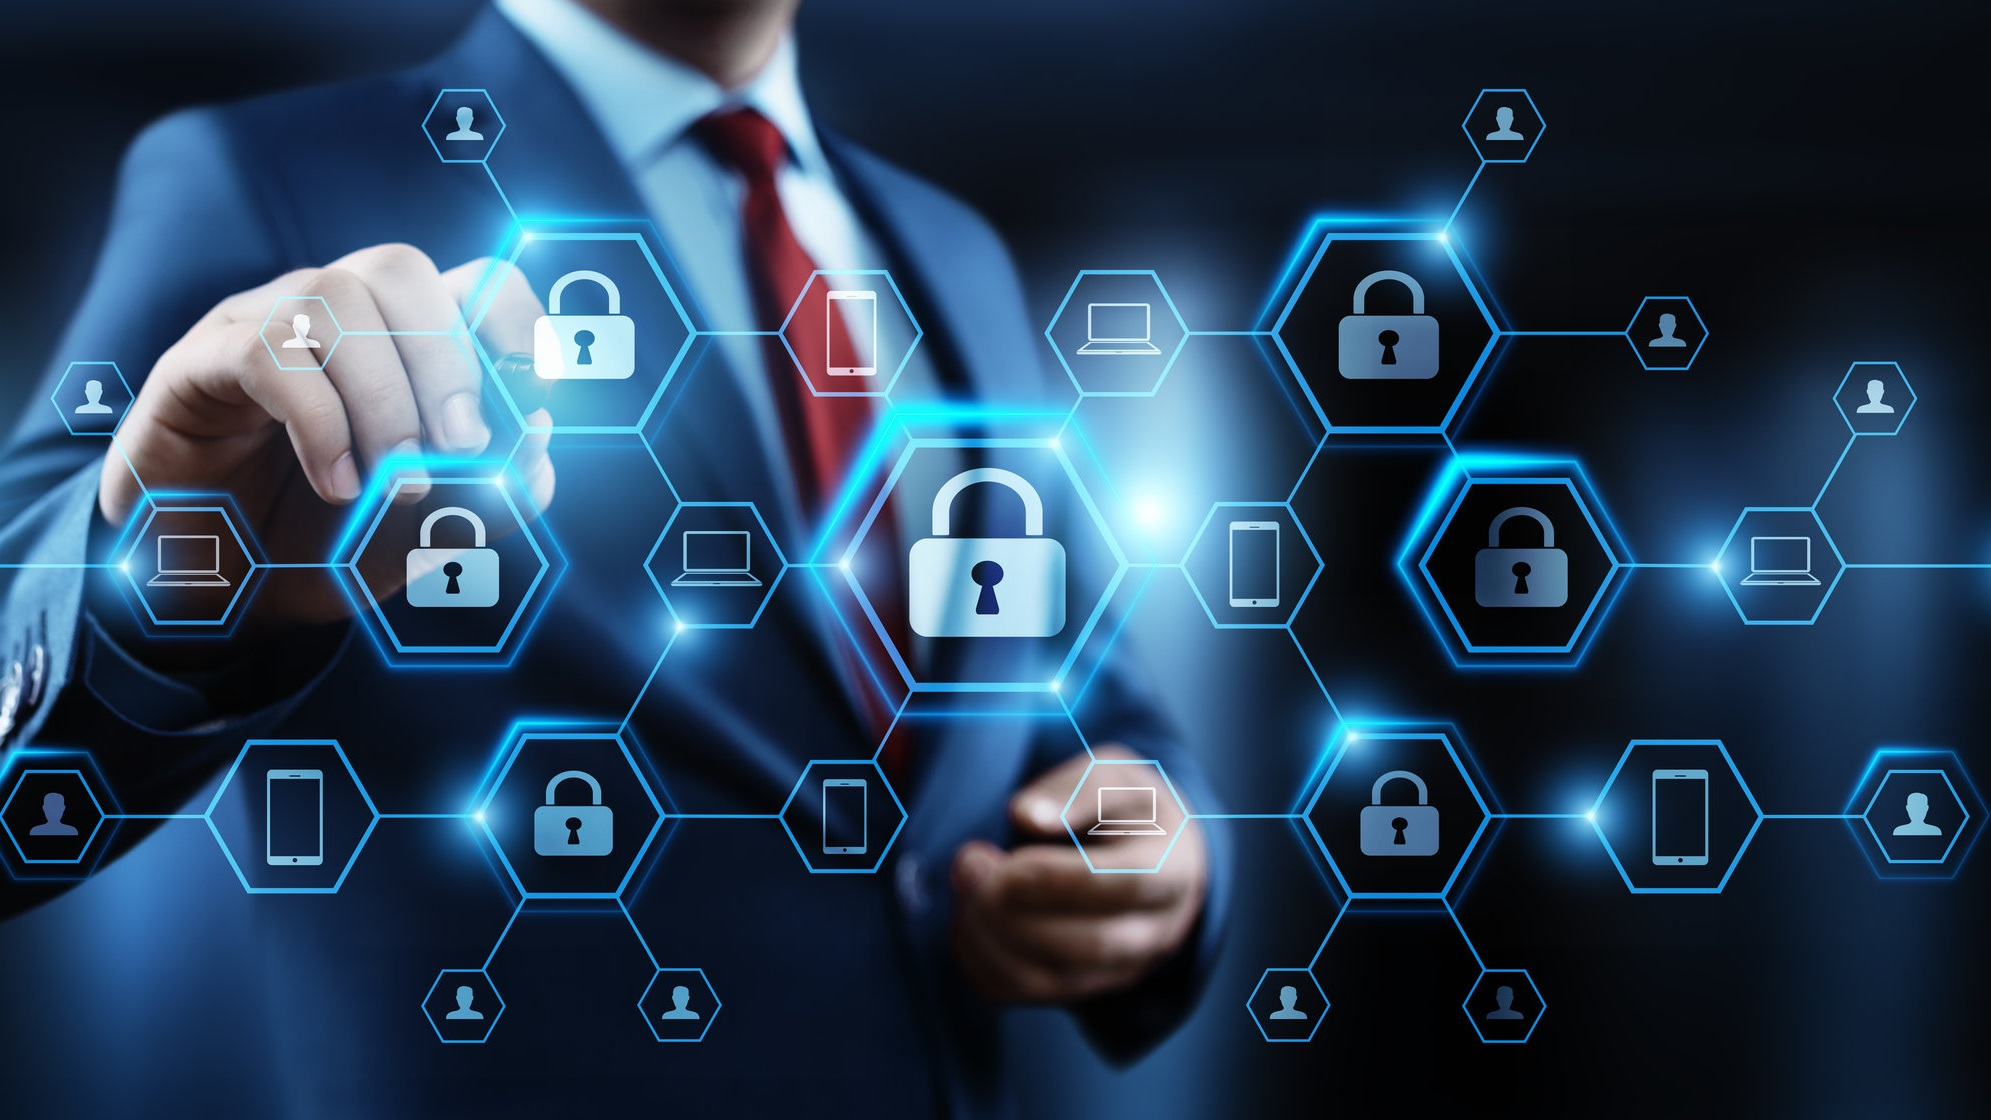 Security Policy Creation - The development of an organizations policies to ensure that all information technology users within the domain of the organization or its networks comply with rules and guidelines related to the security of the information stored digitally.